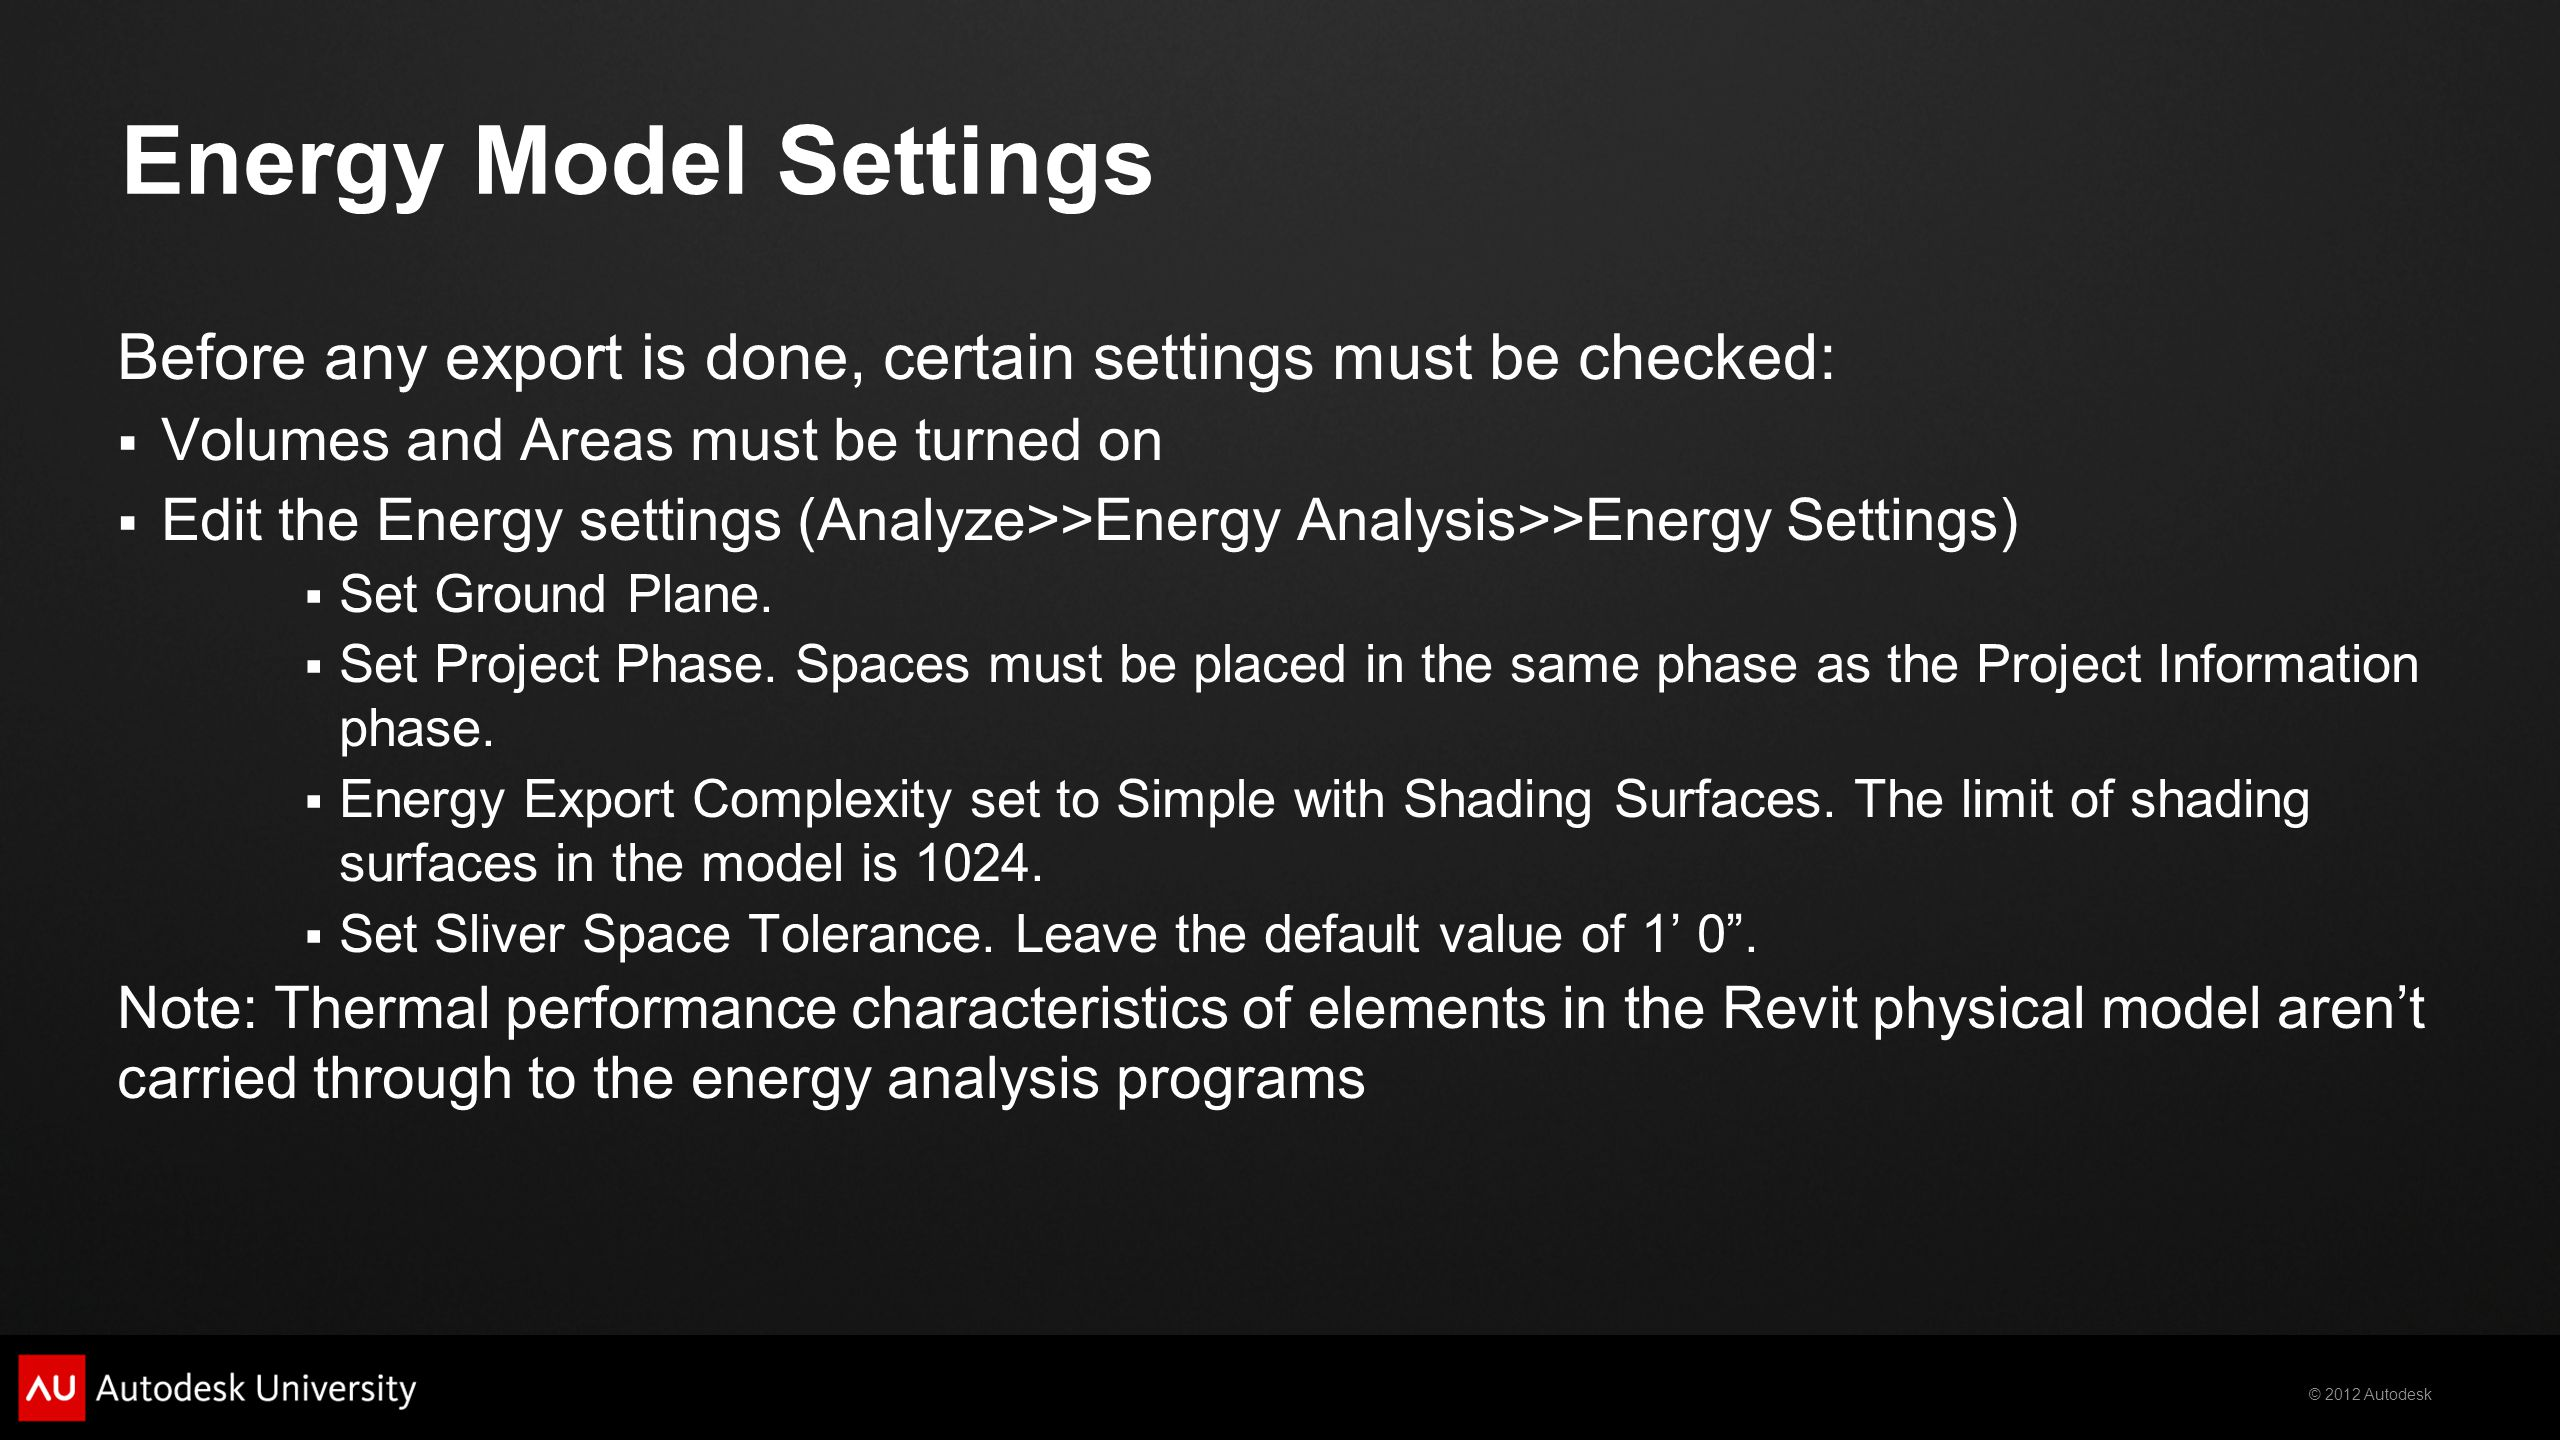 Energy Model Settings Before any export is done, certain settings must be checked: Volumes and Areas must be turned on.